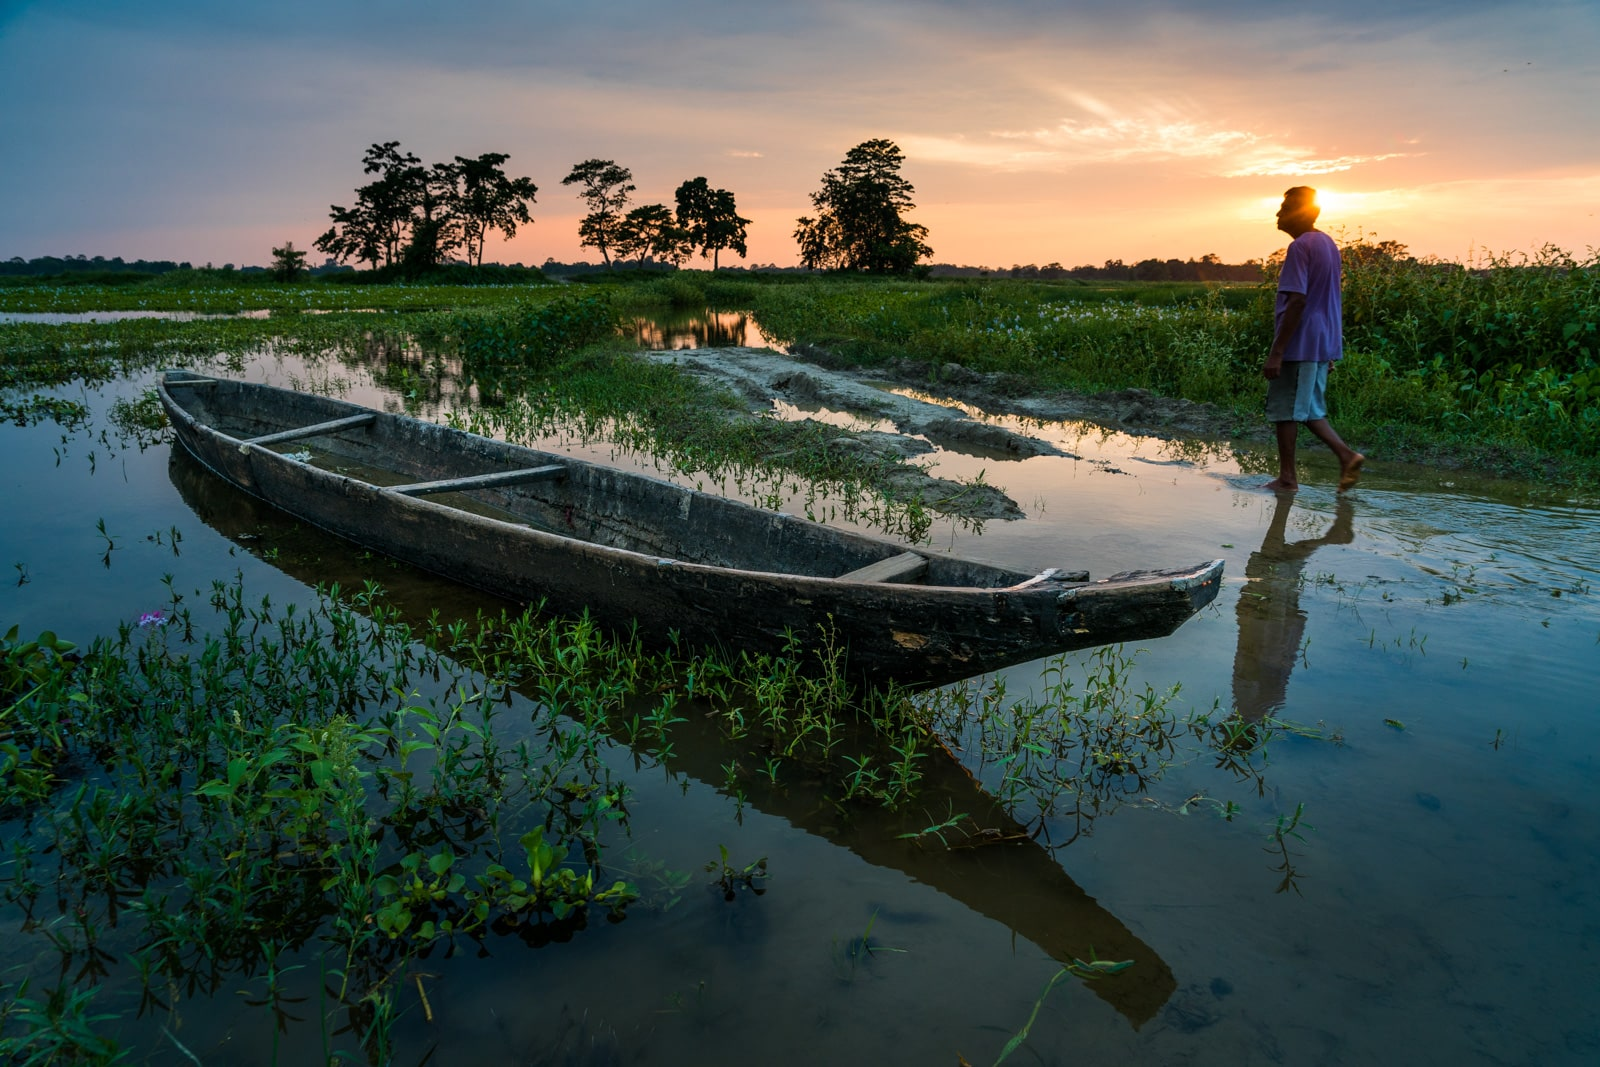 Top off the beaten track destinations in India - A fisherman and boat in Majuli - Lost With Purpose travel blog